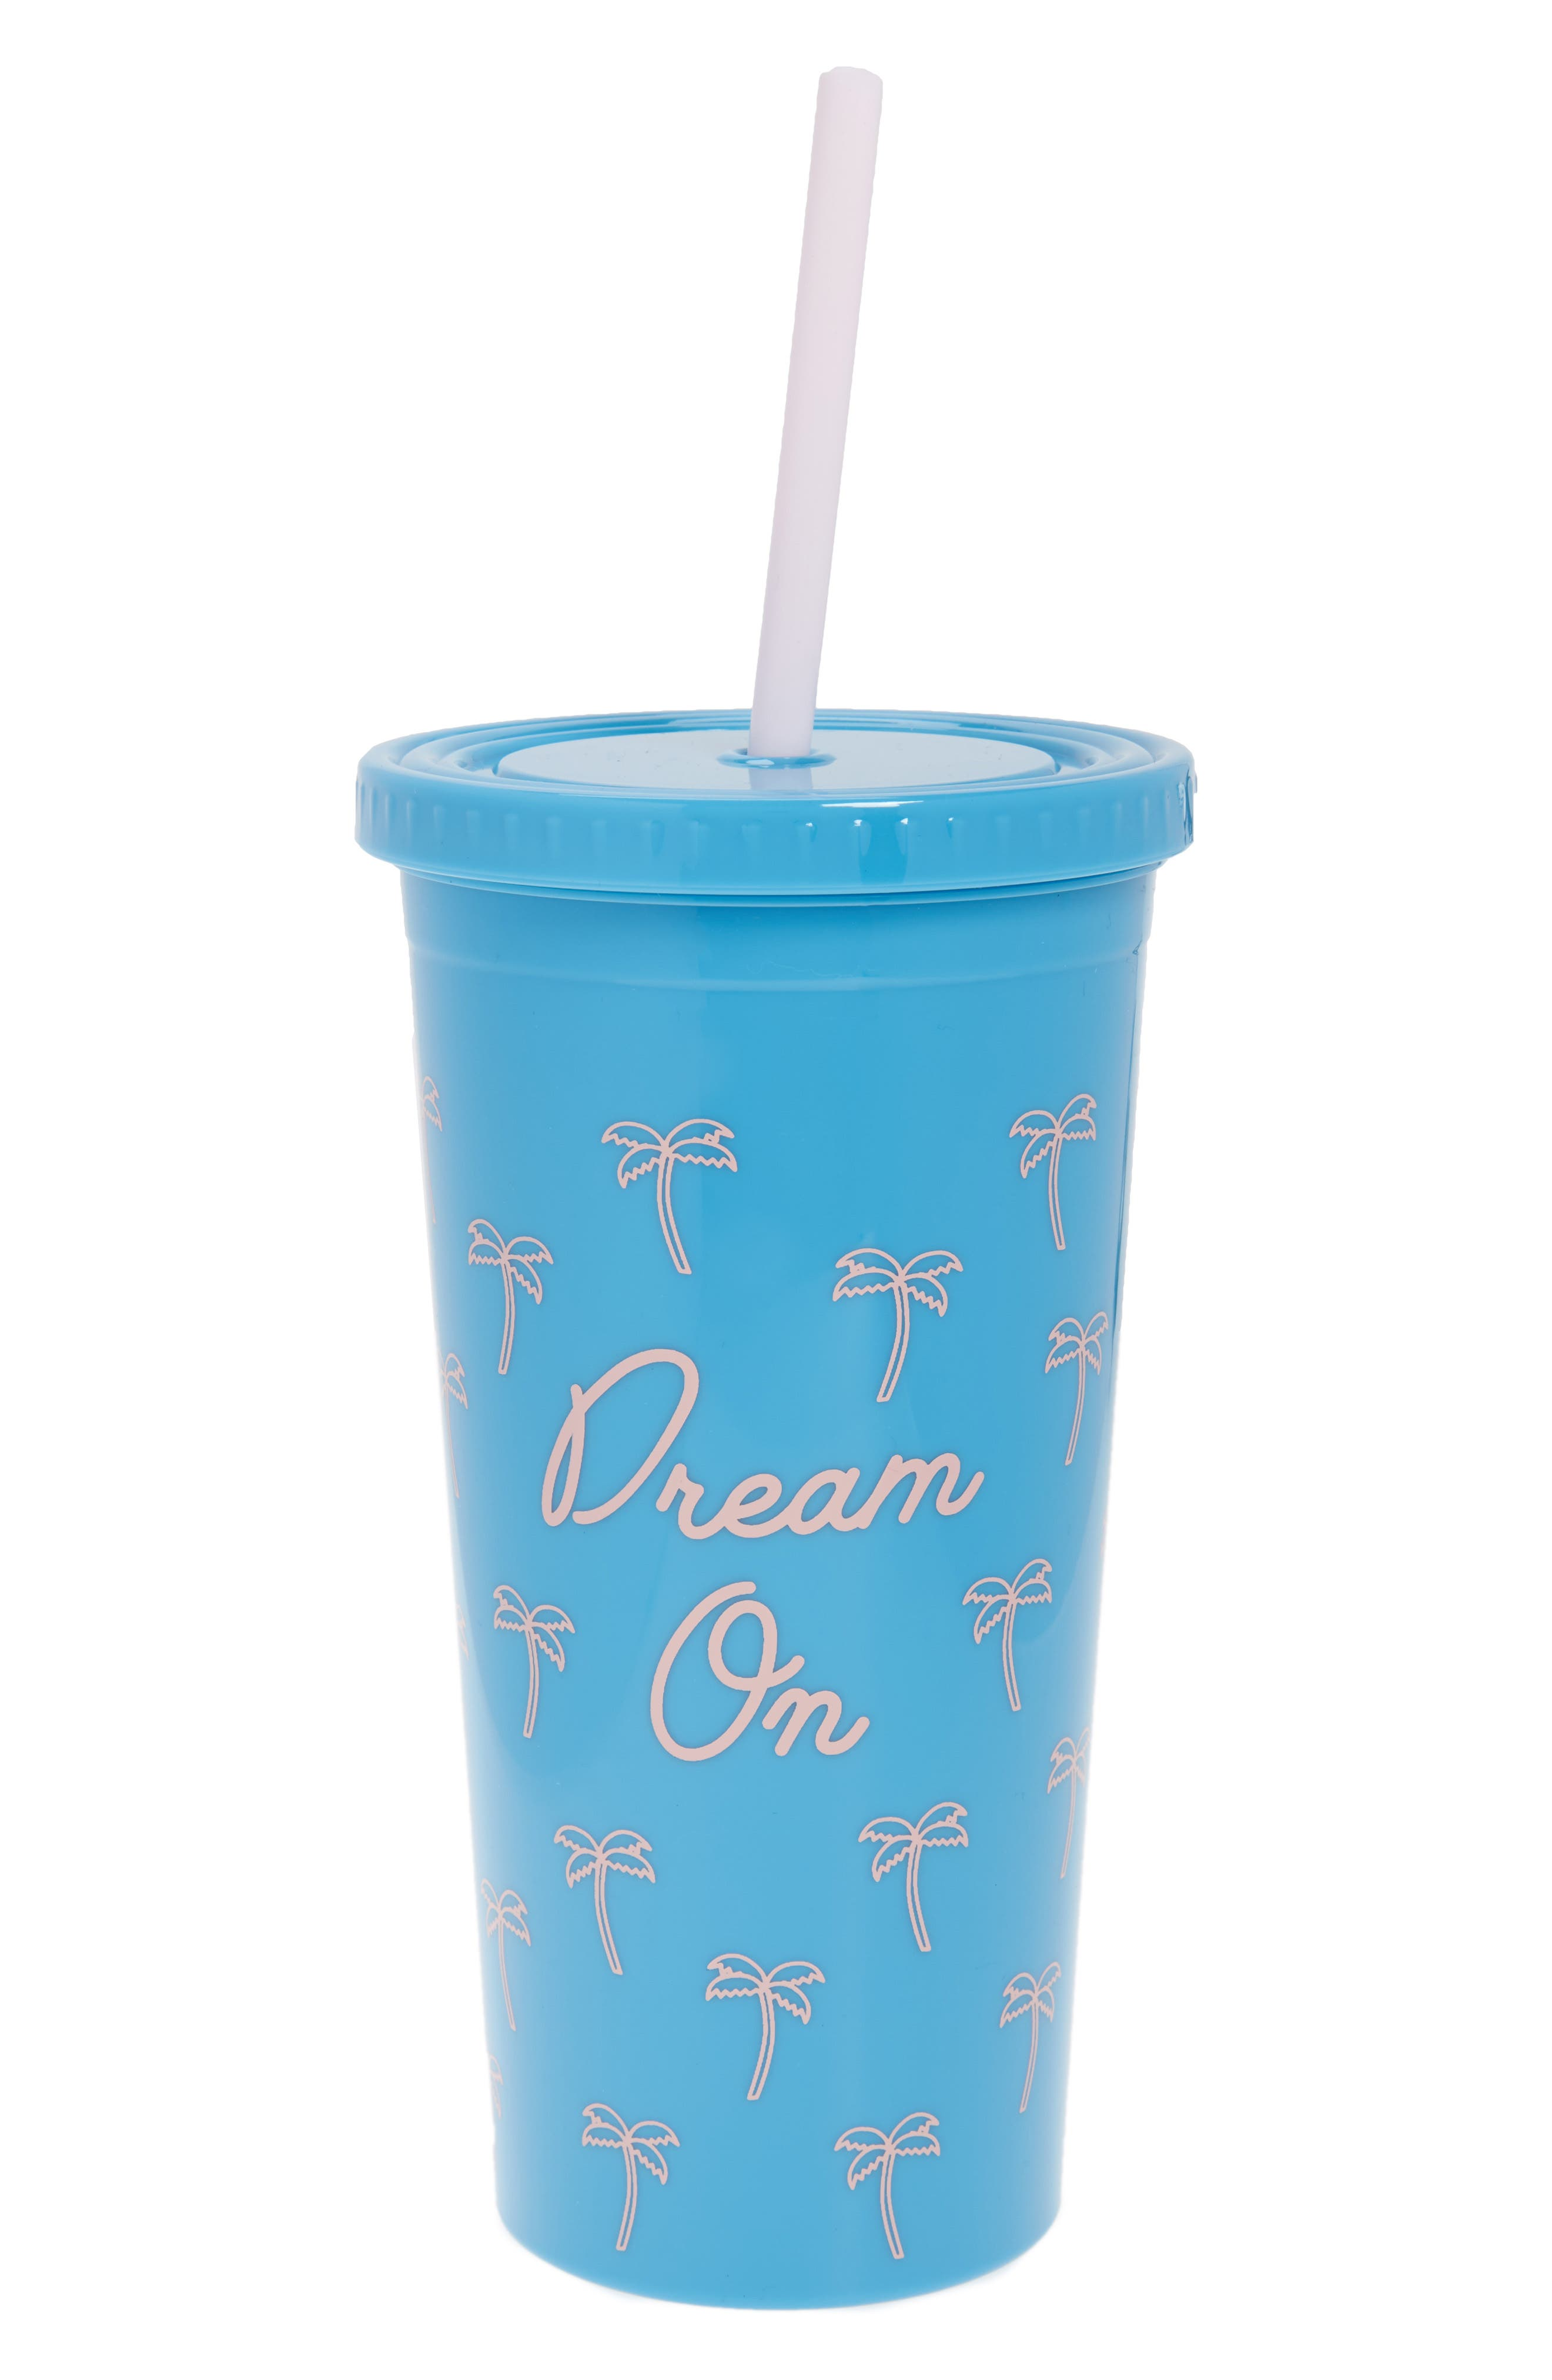 Main Image - The Created Co. Dream On Tumbler & Straw